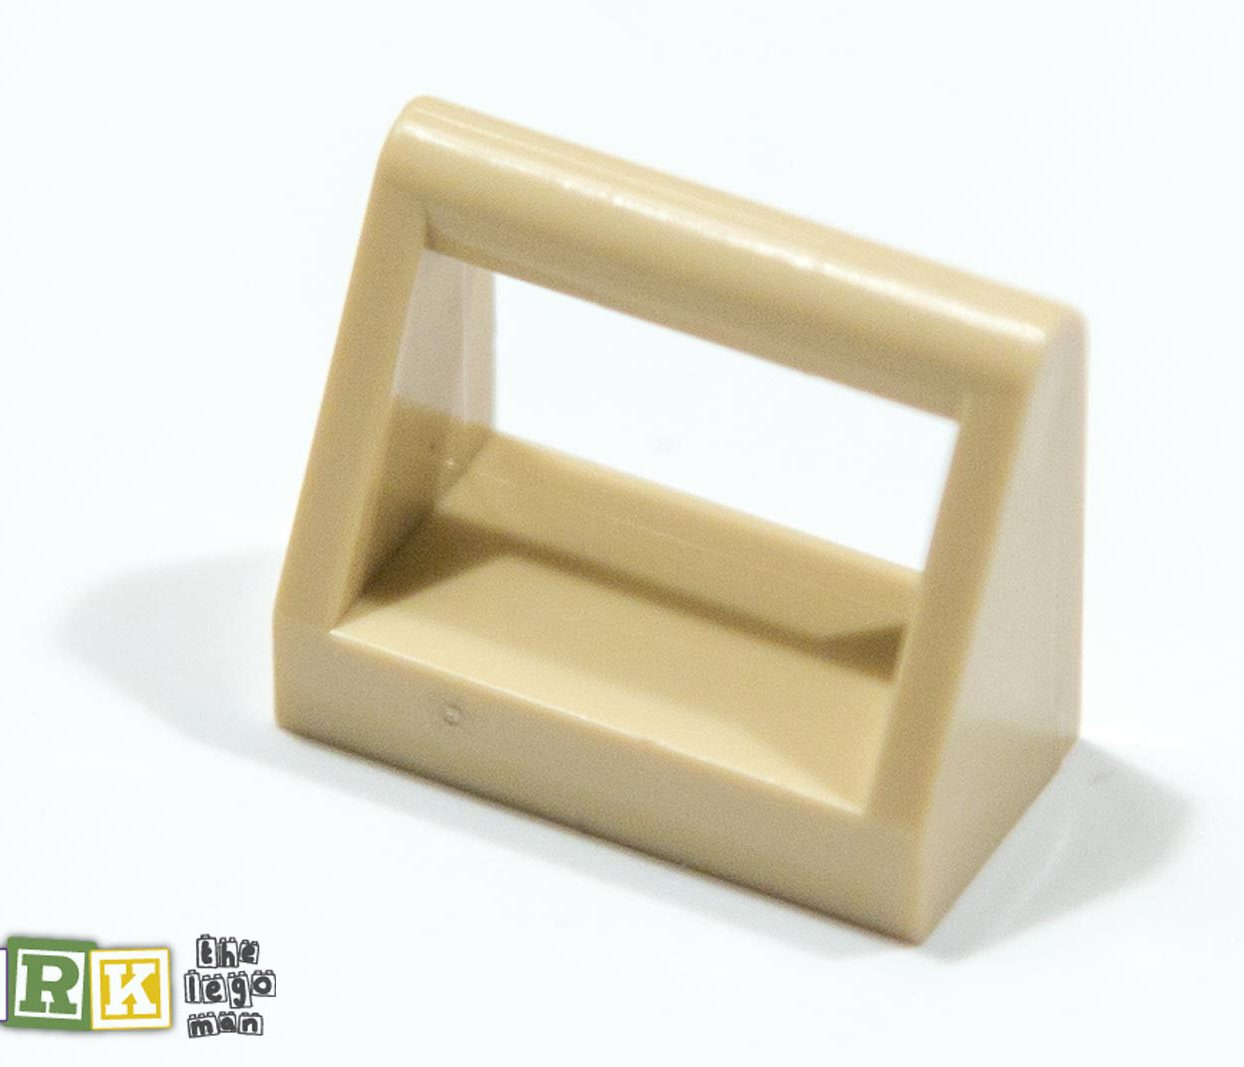 Lego 4124457 2432 Brick Yellow (Tan) 1x2 Clamp